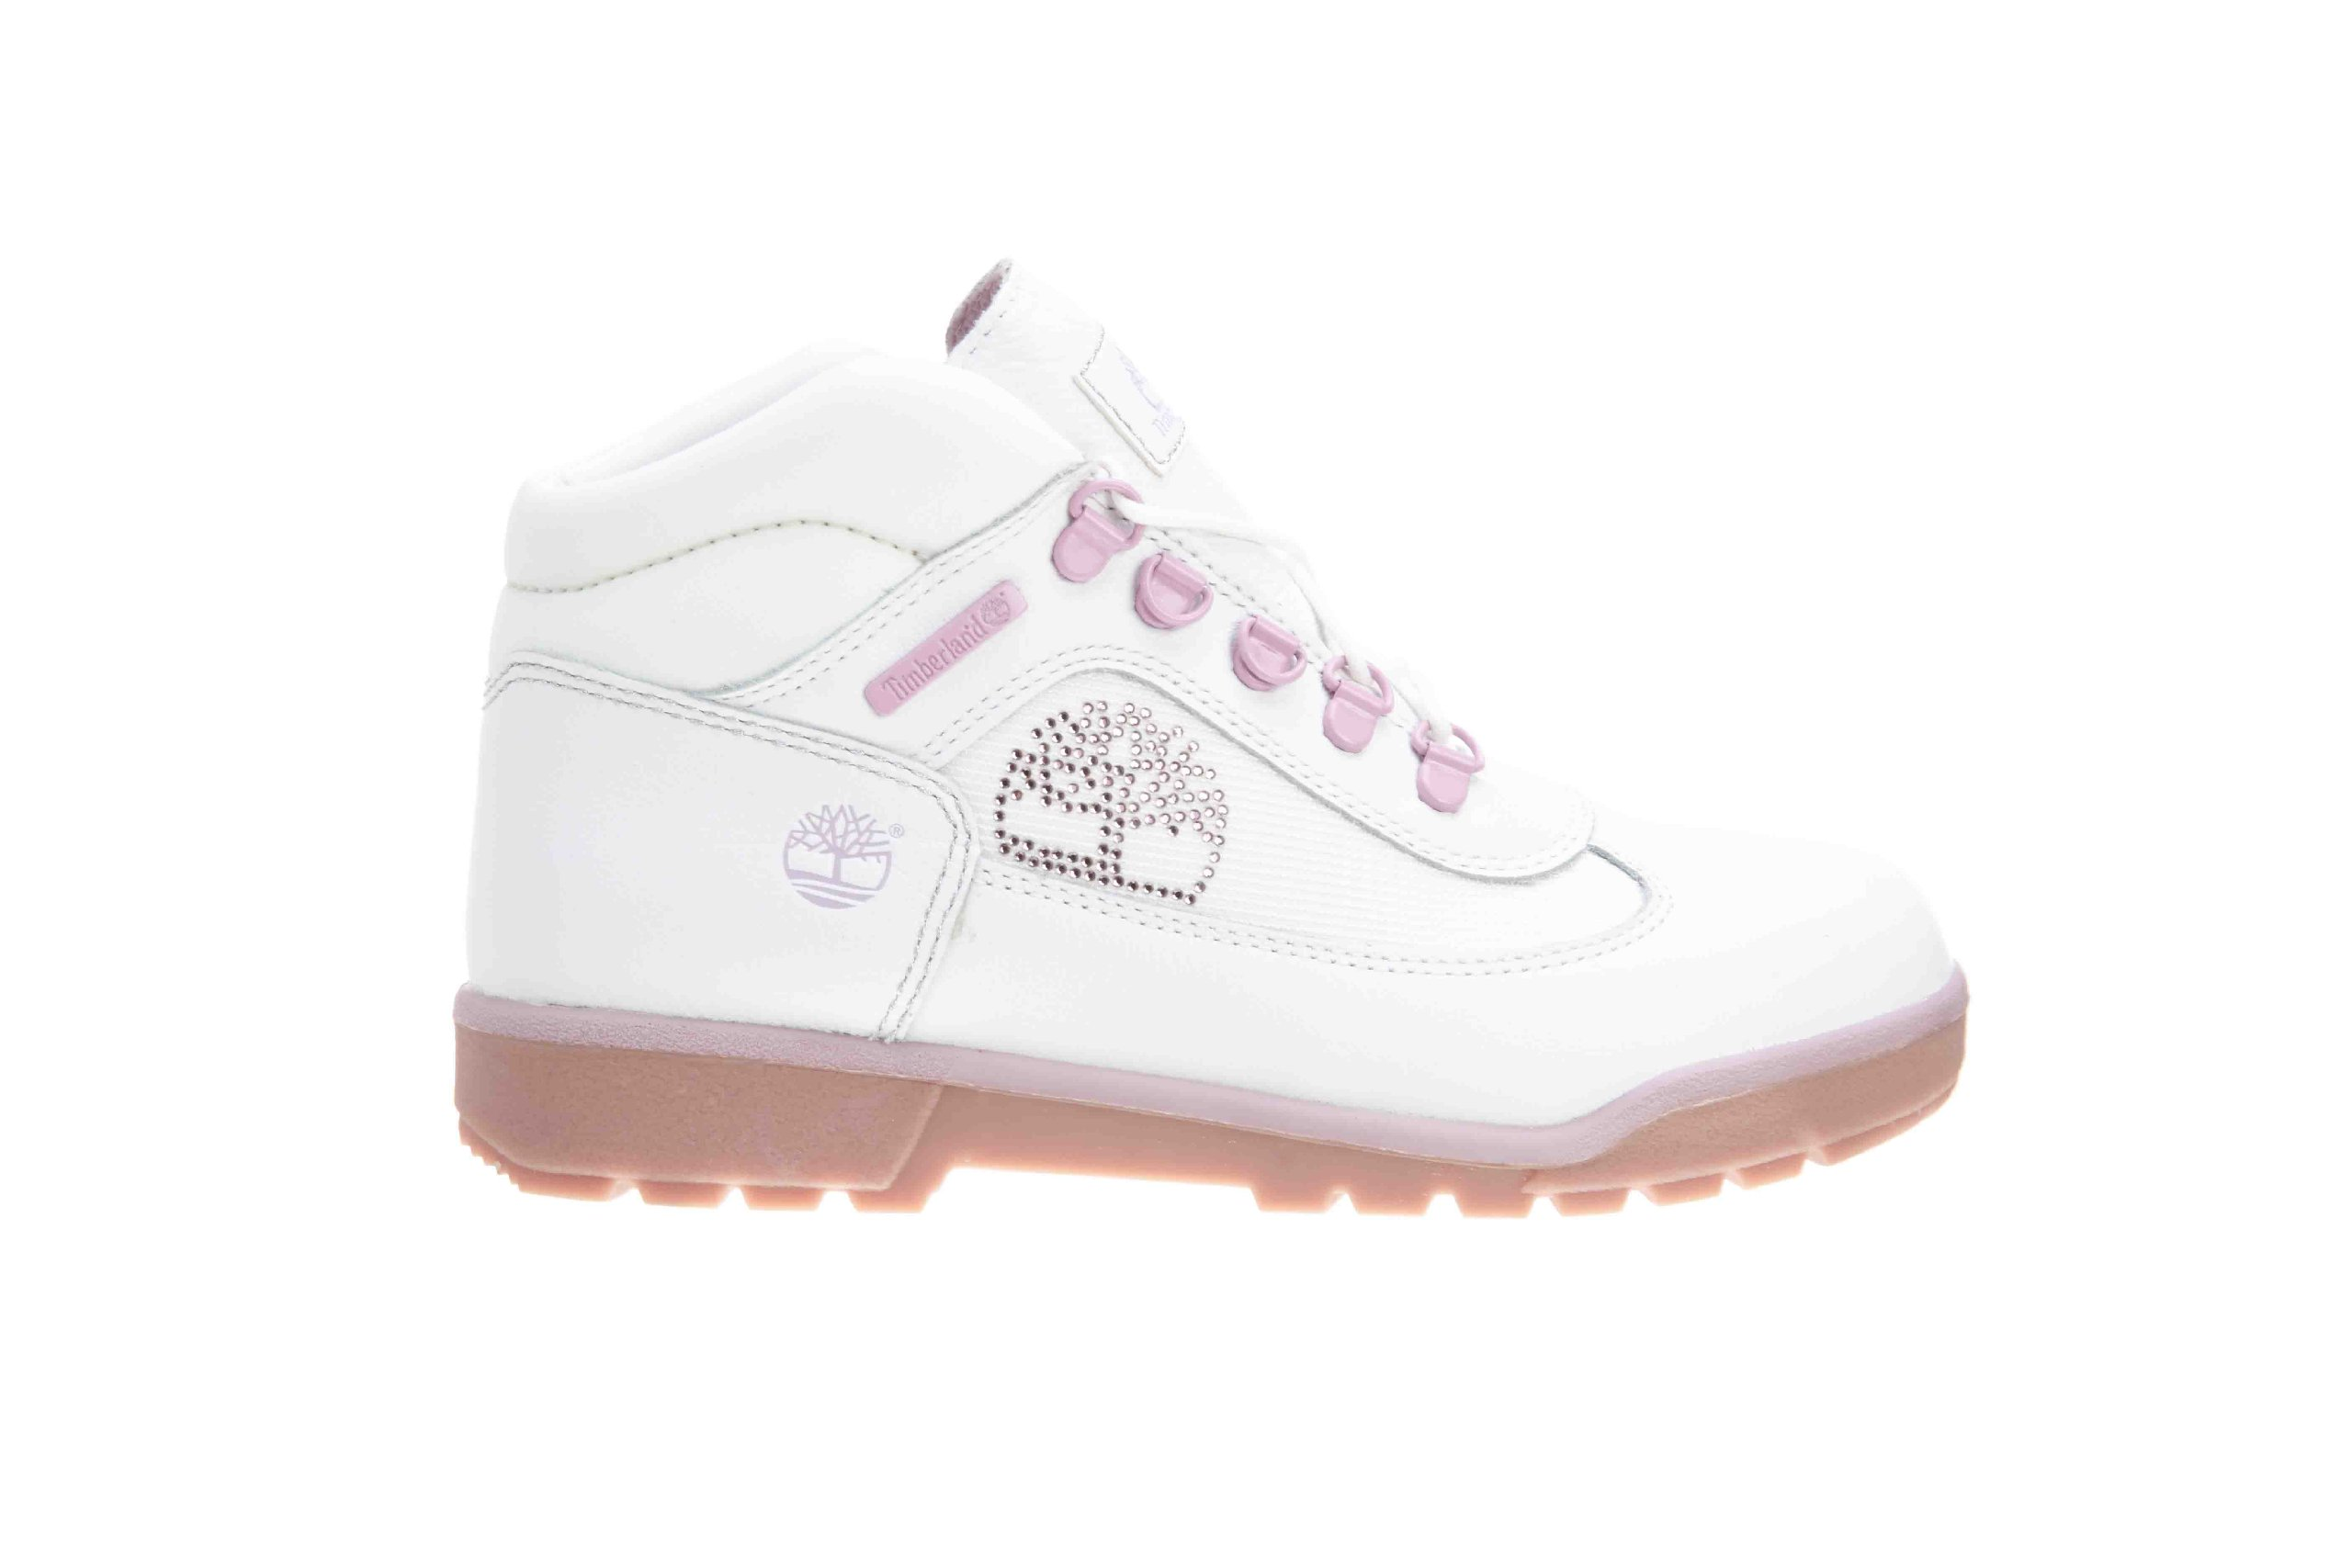 Timberland Field Boots (Gs) Big Kids Style: 25985-LUXWHITE Size: 4.5 by Timberland (Image #2)